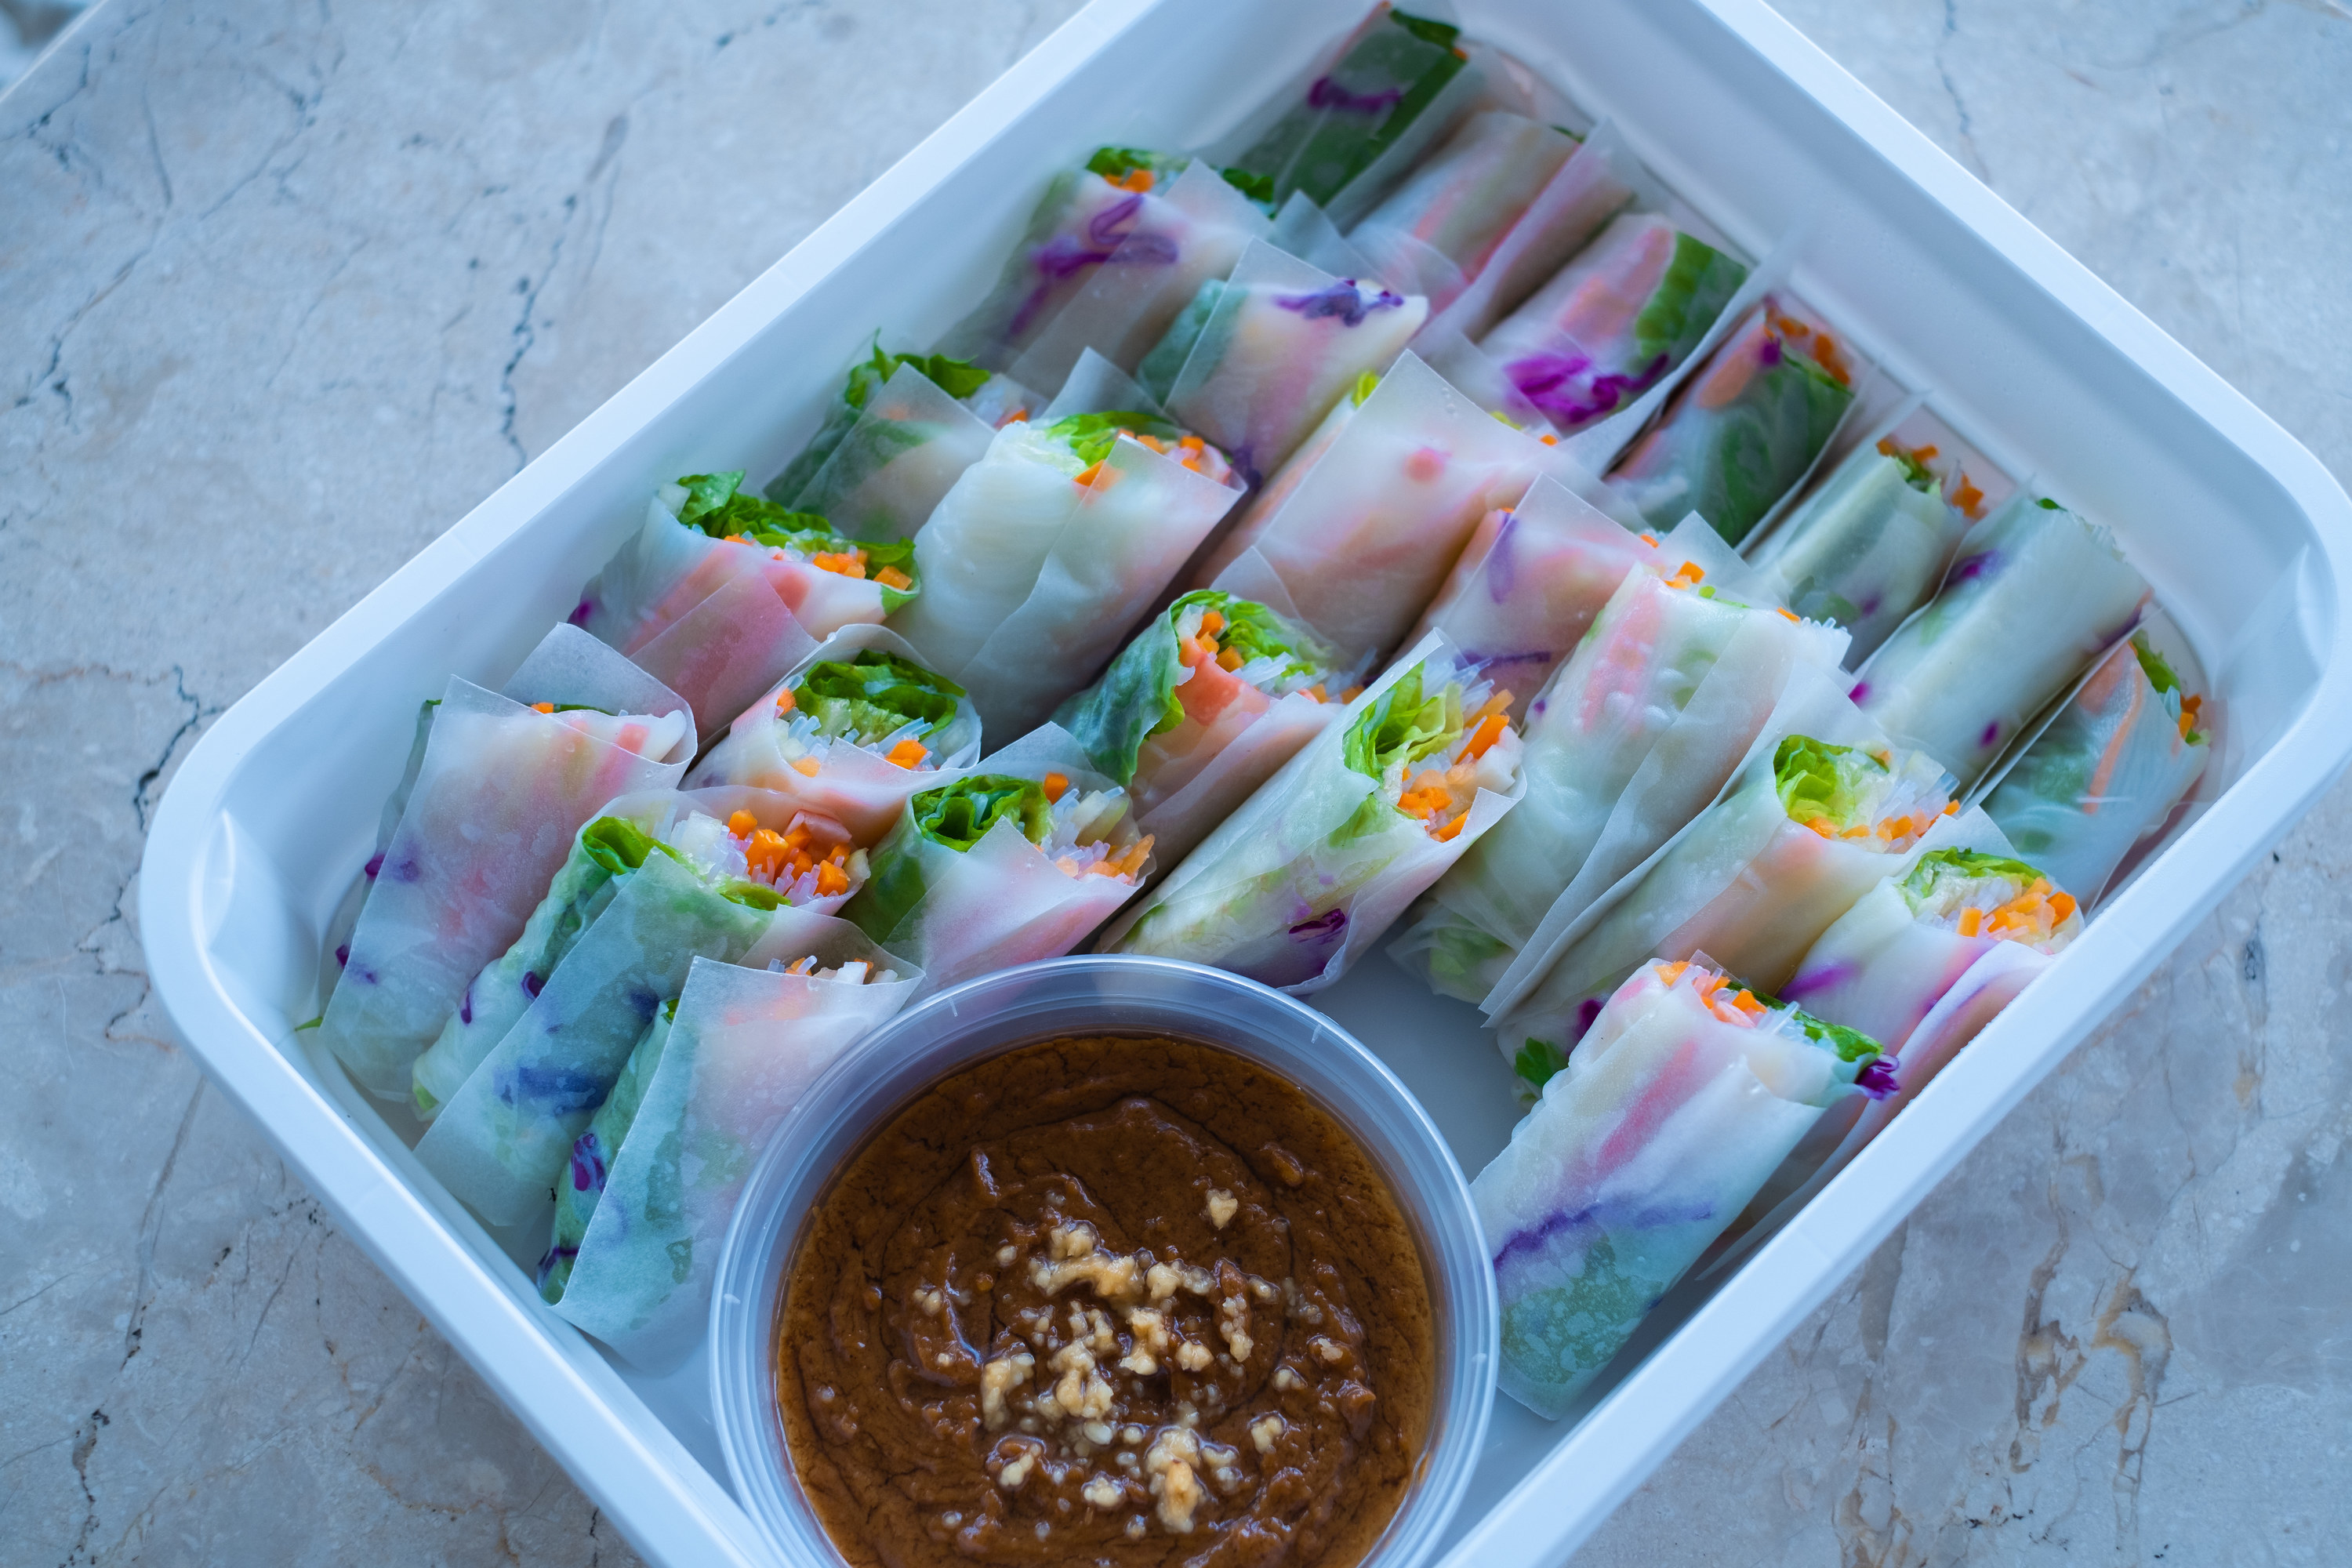 Twenty-five spring rolls and accompanying dip are in a white rectangular container